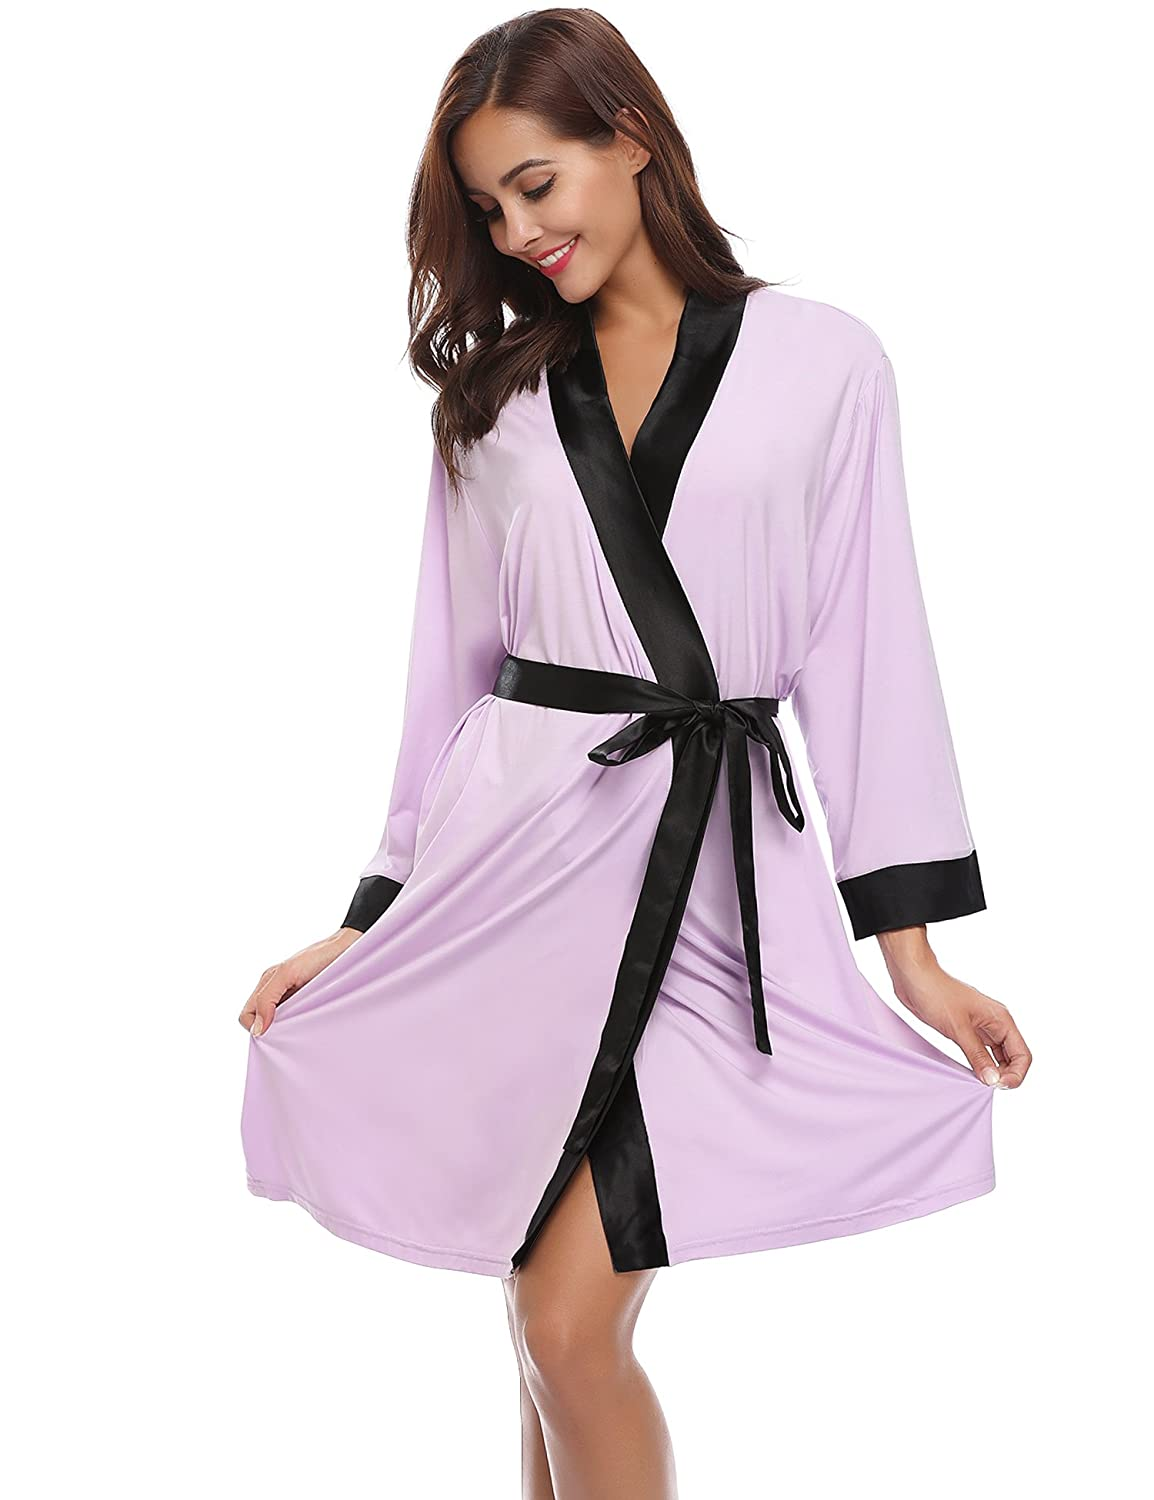 Aibrou Unisex Waffle Weave 100% Cotton Bathrobe Dressing Gown Lightweight Robe for Spa Hotel Sleepwear